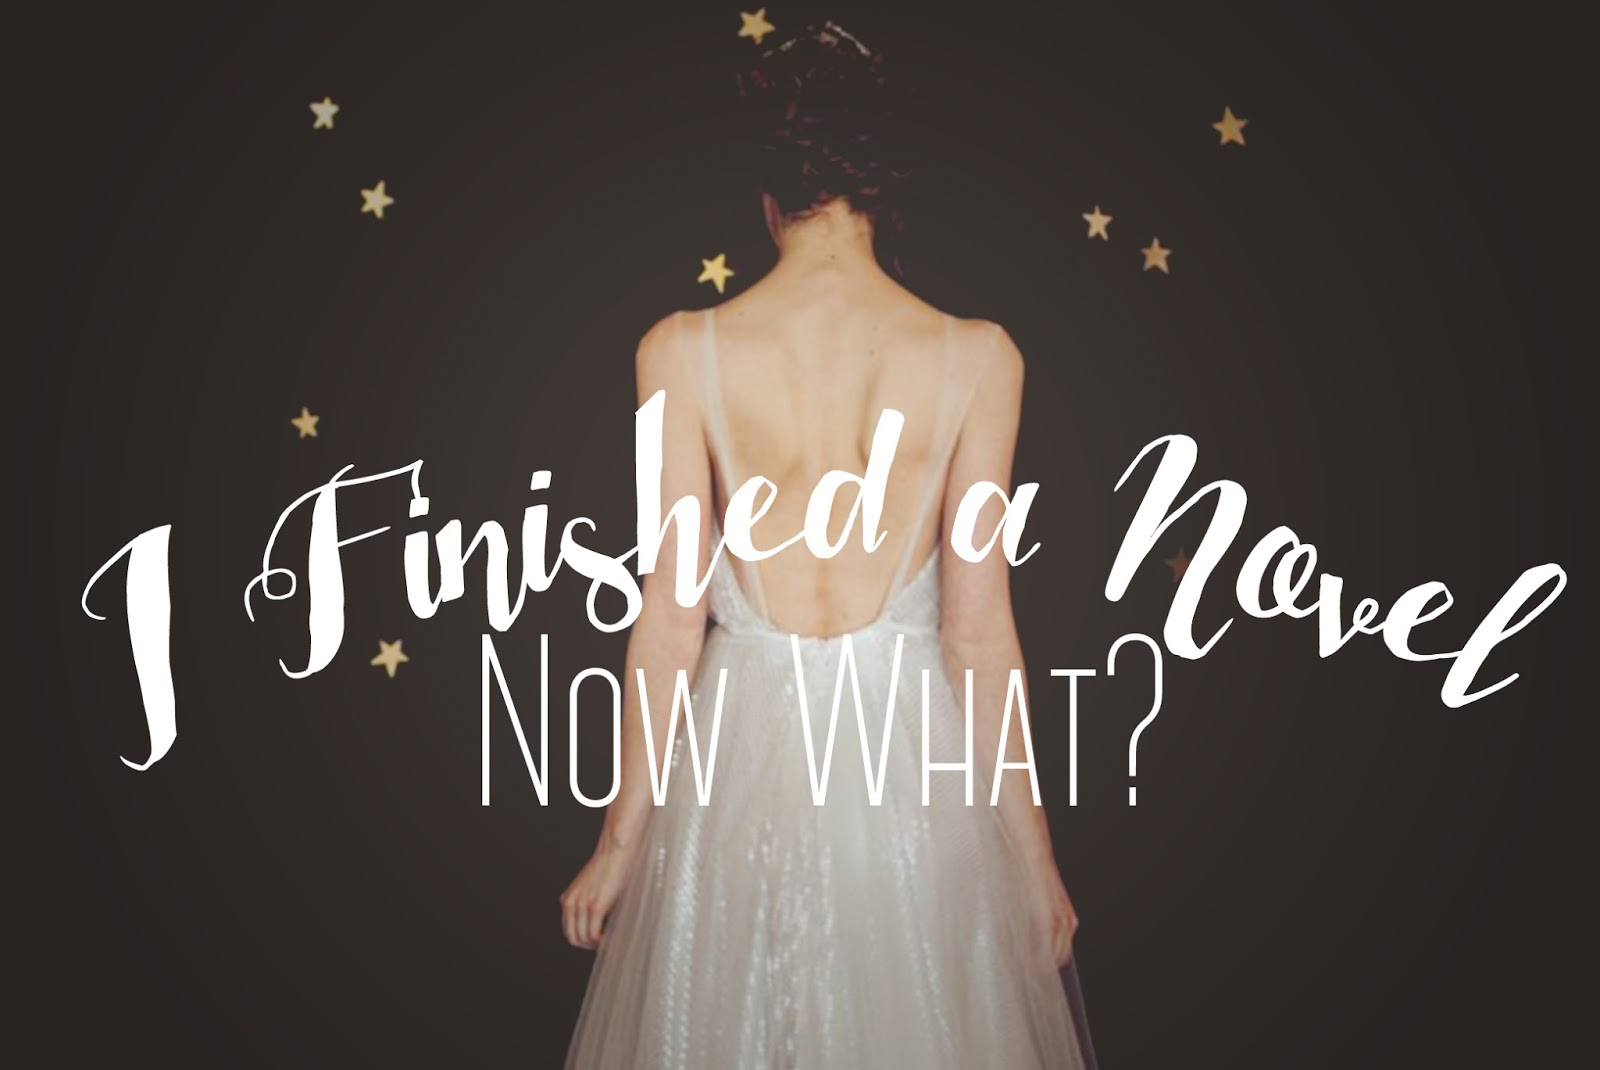 I Finished a Novel... Now What?